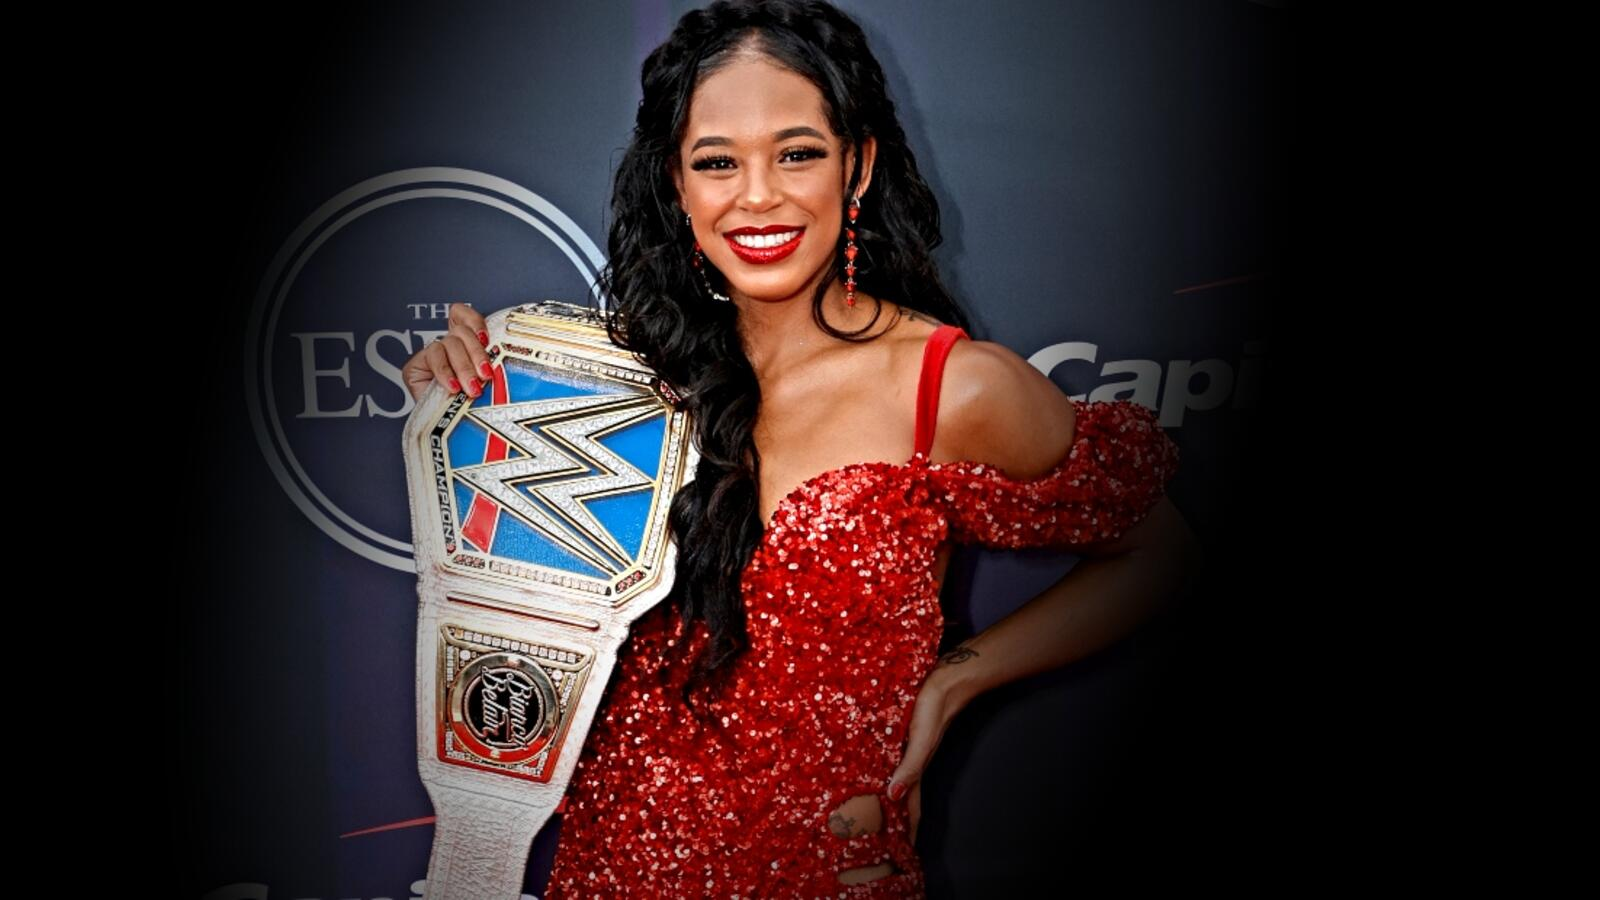 Bianca Belair Tops Annual PWI Women's 150 List; Top 5 is Revealed